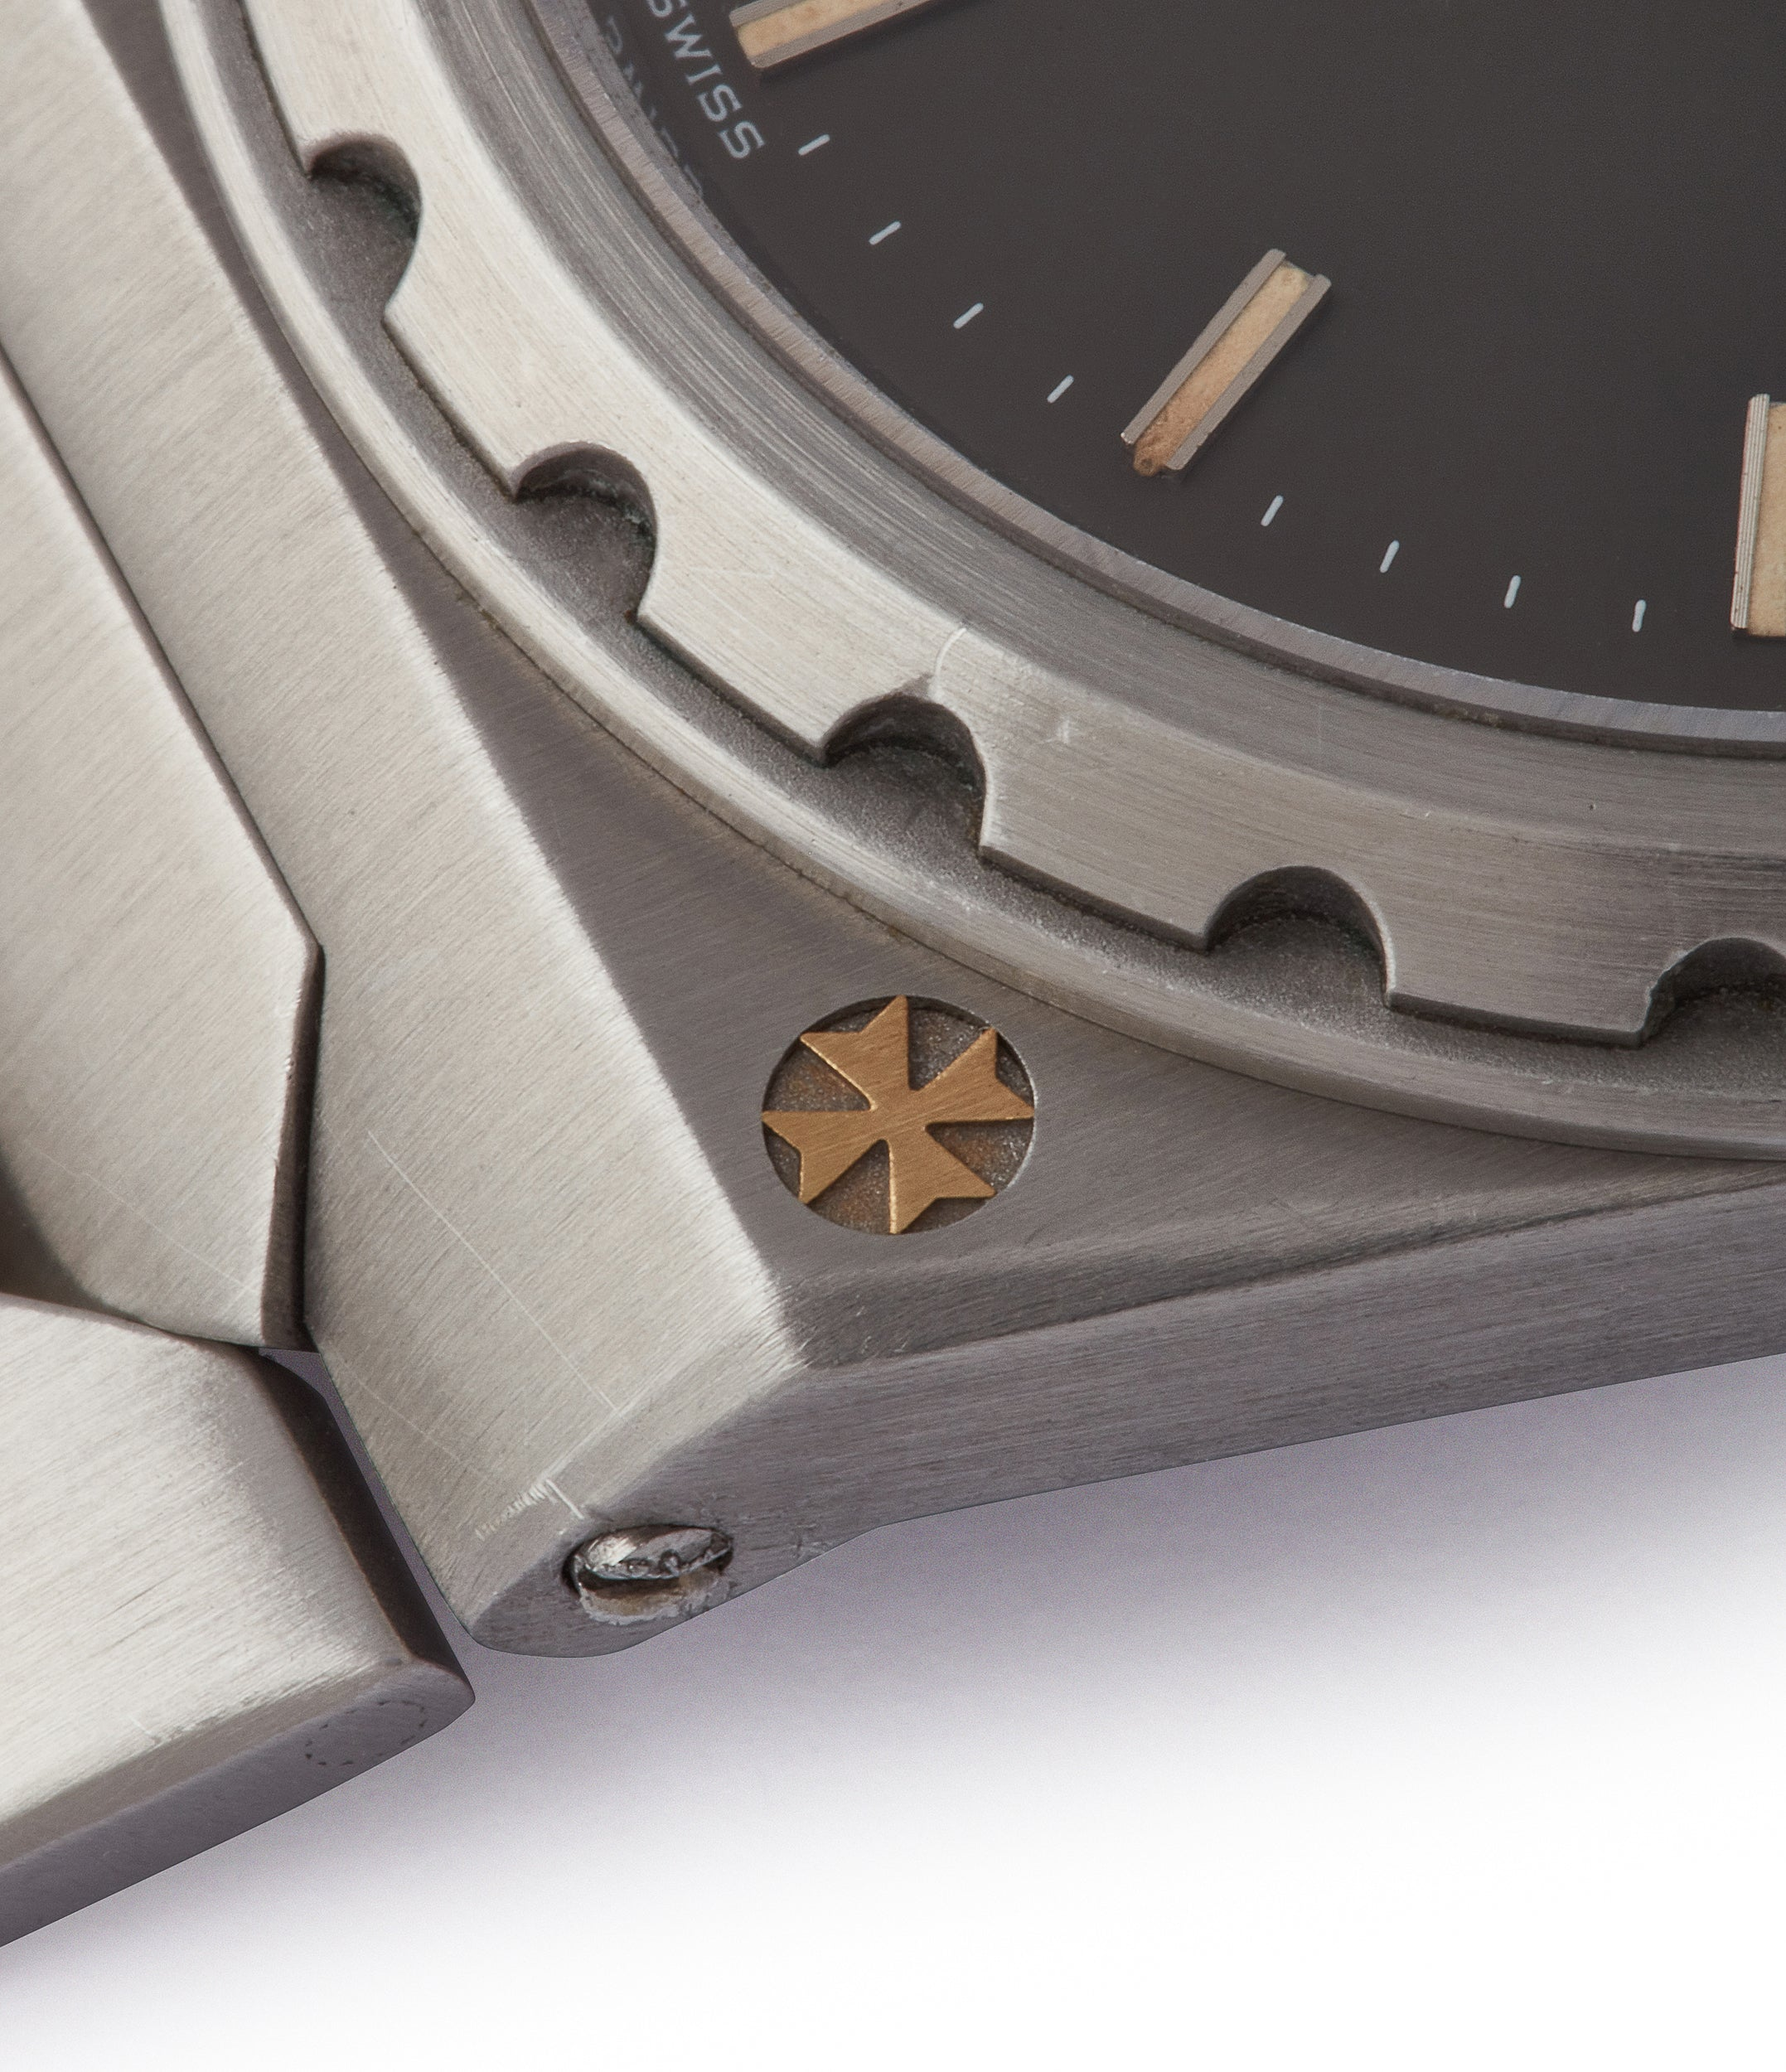 Vacheron Constantin 222 corner of the case showing the inlaid Maltese Cross for A Collected Man London